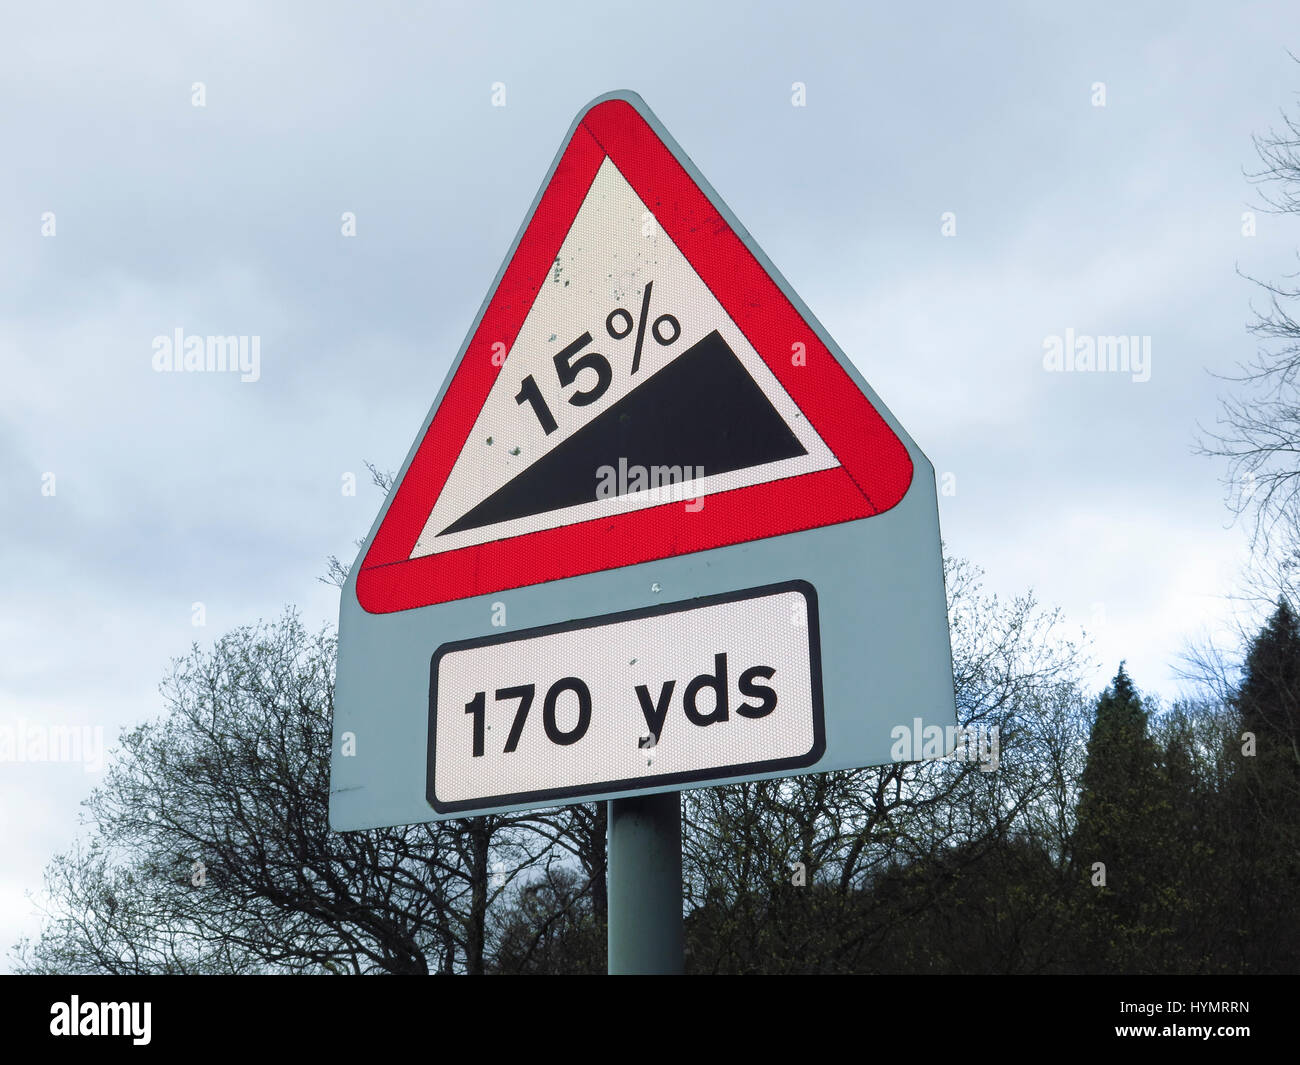 Steep uphill road sign - Stock Image